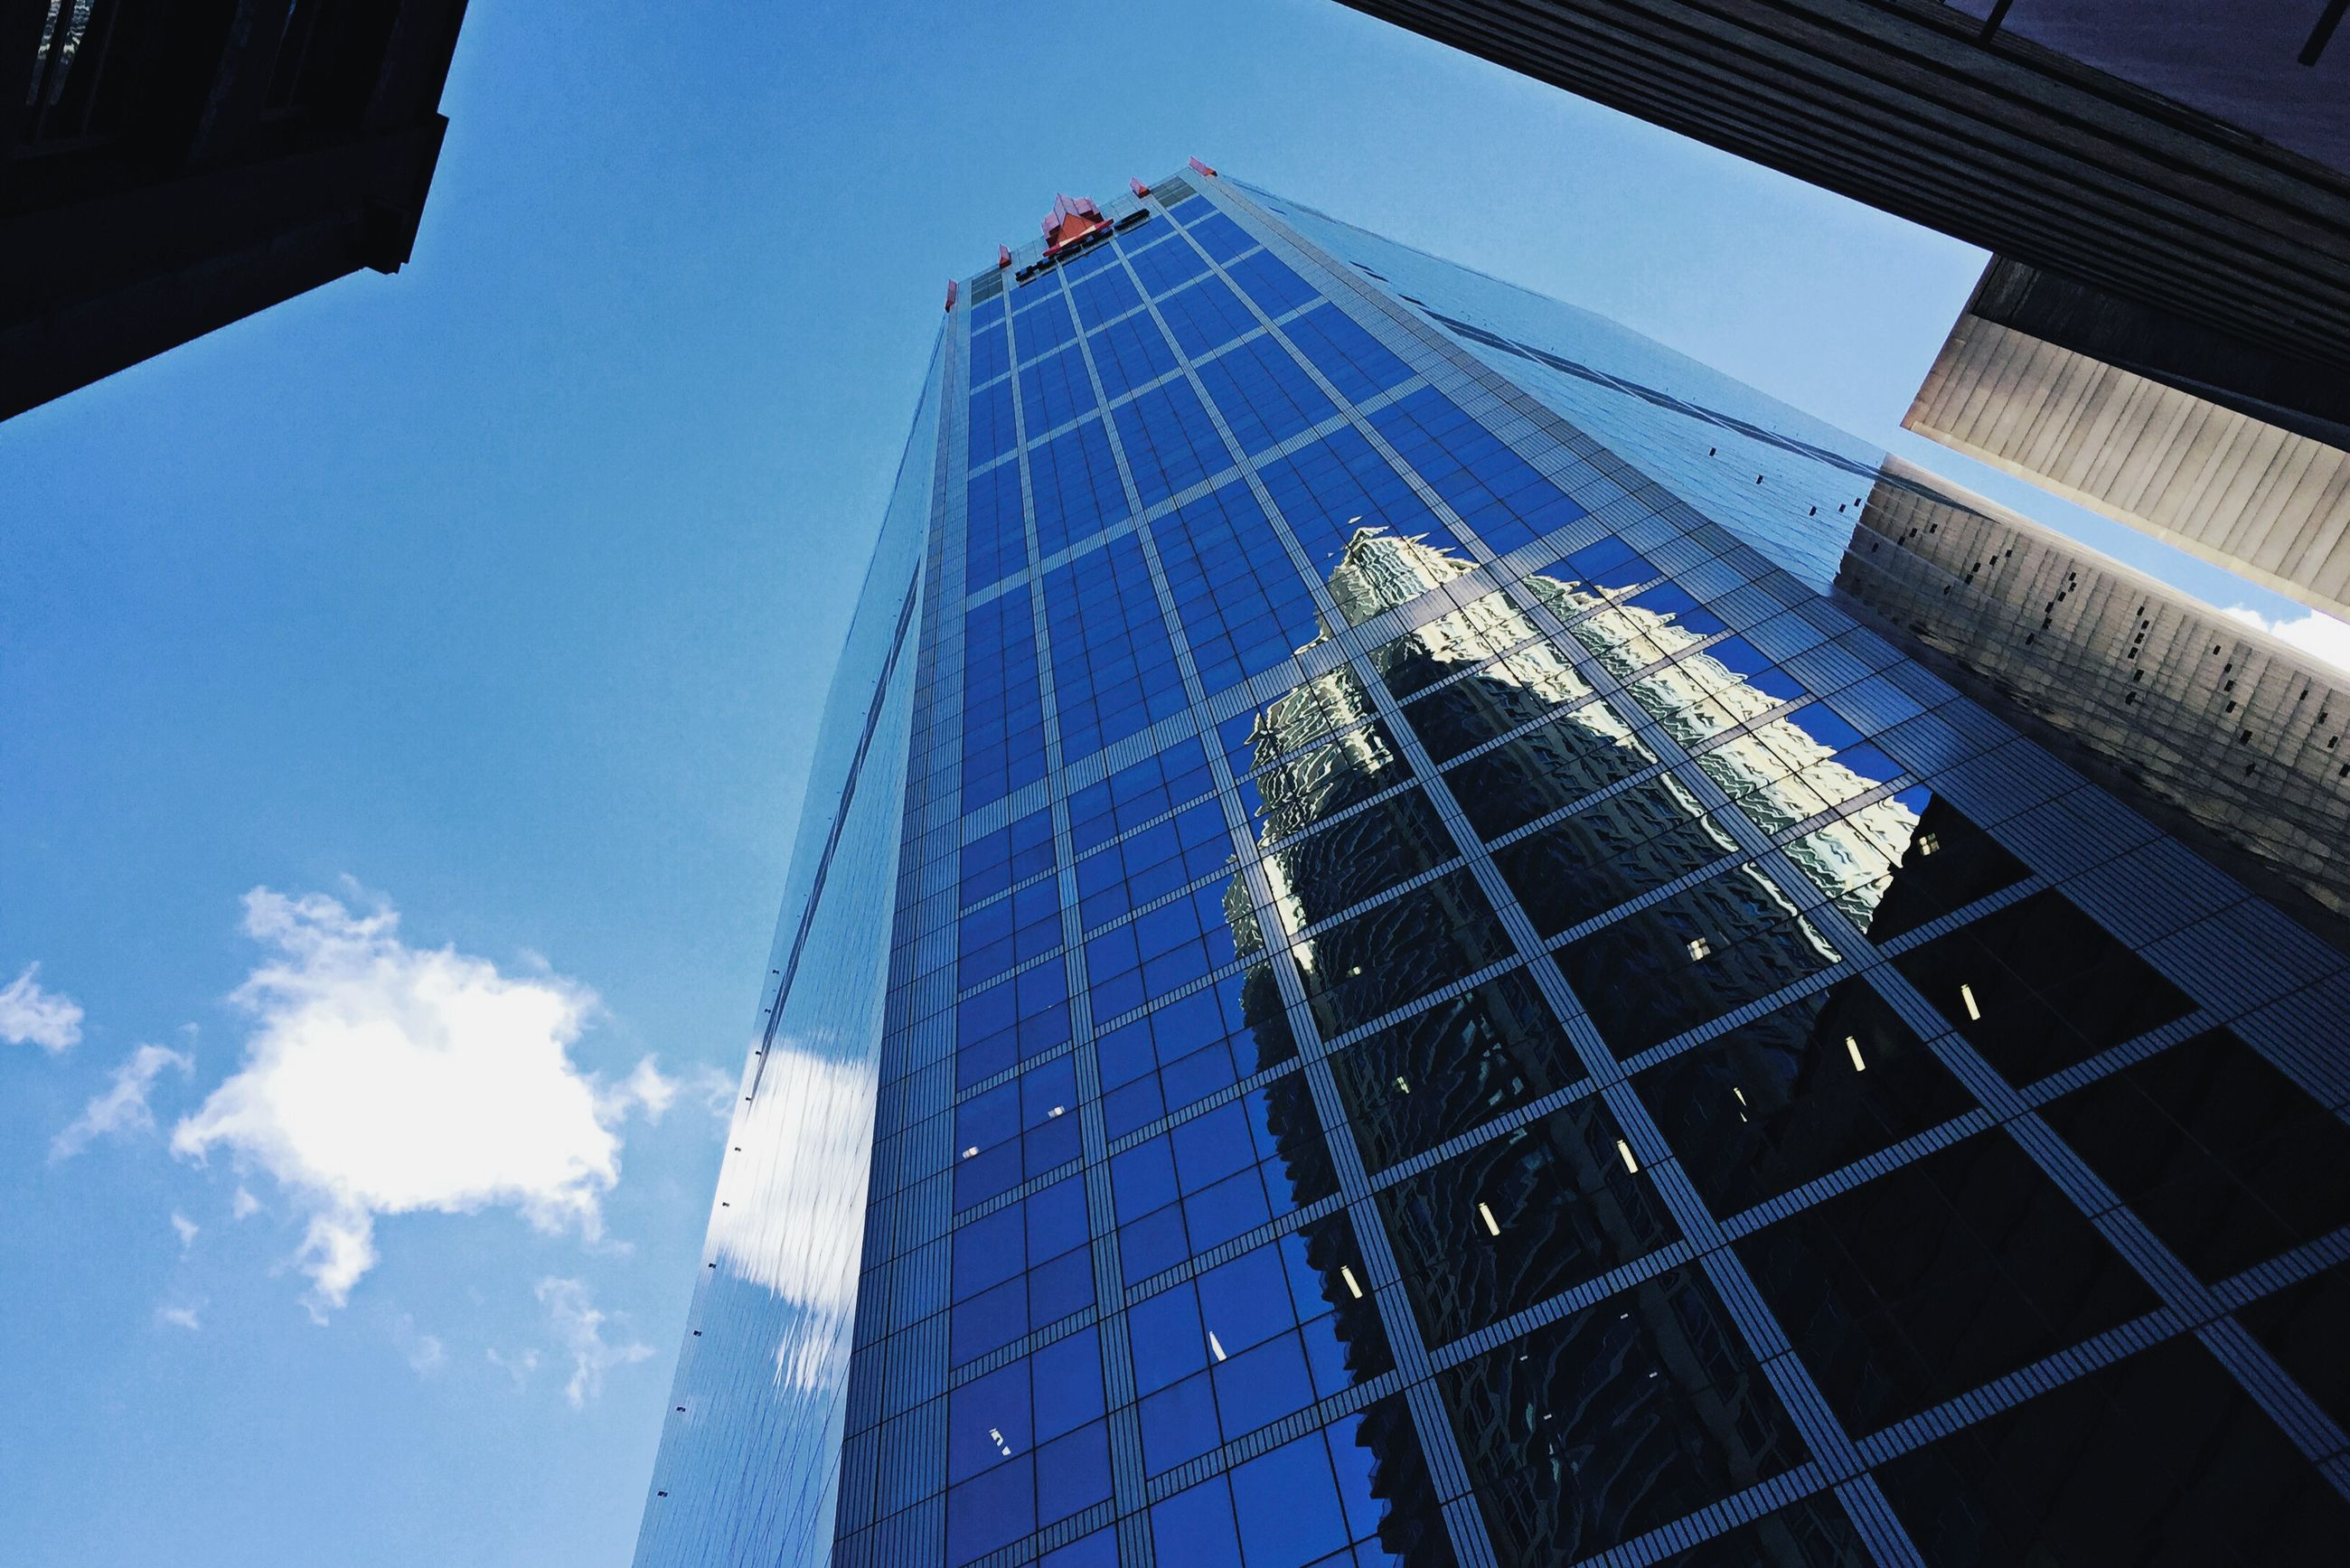 architecture, built structure, low angle view, building exterior, modern, skyscraper, tall - high, office building, city, glass - material, tower, reflection, capital cities, building, sky, development, day, city life, travel destinations, outdoors